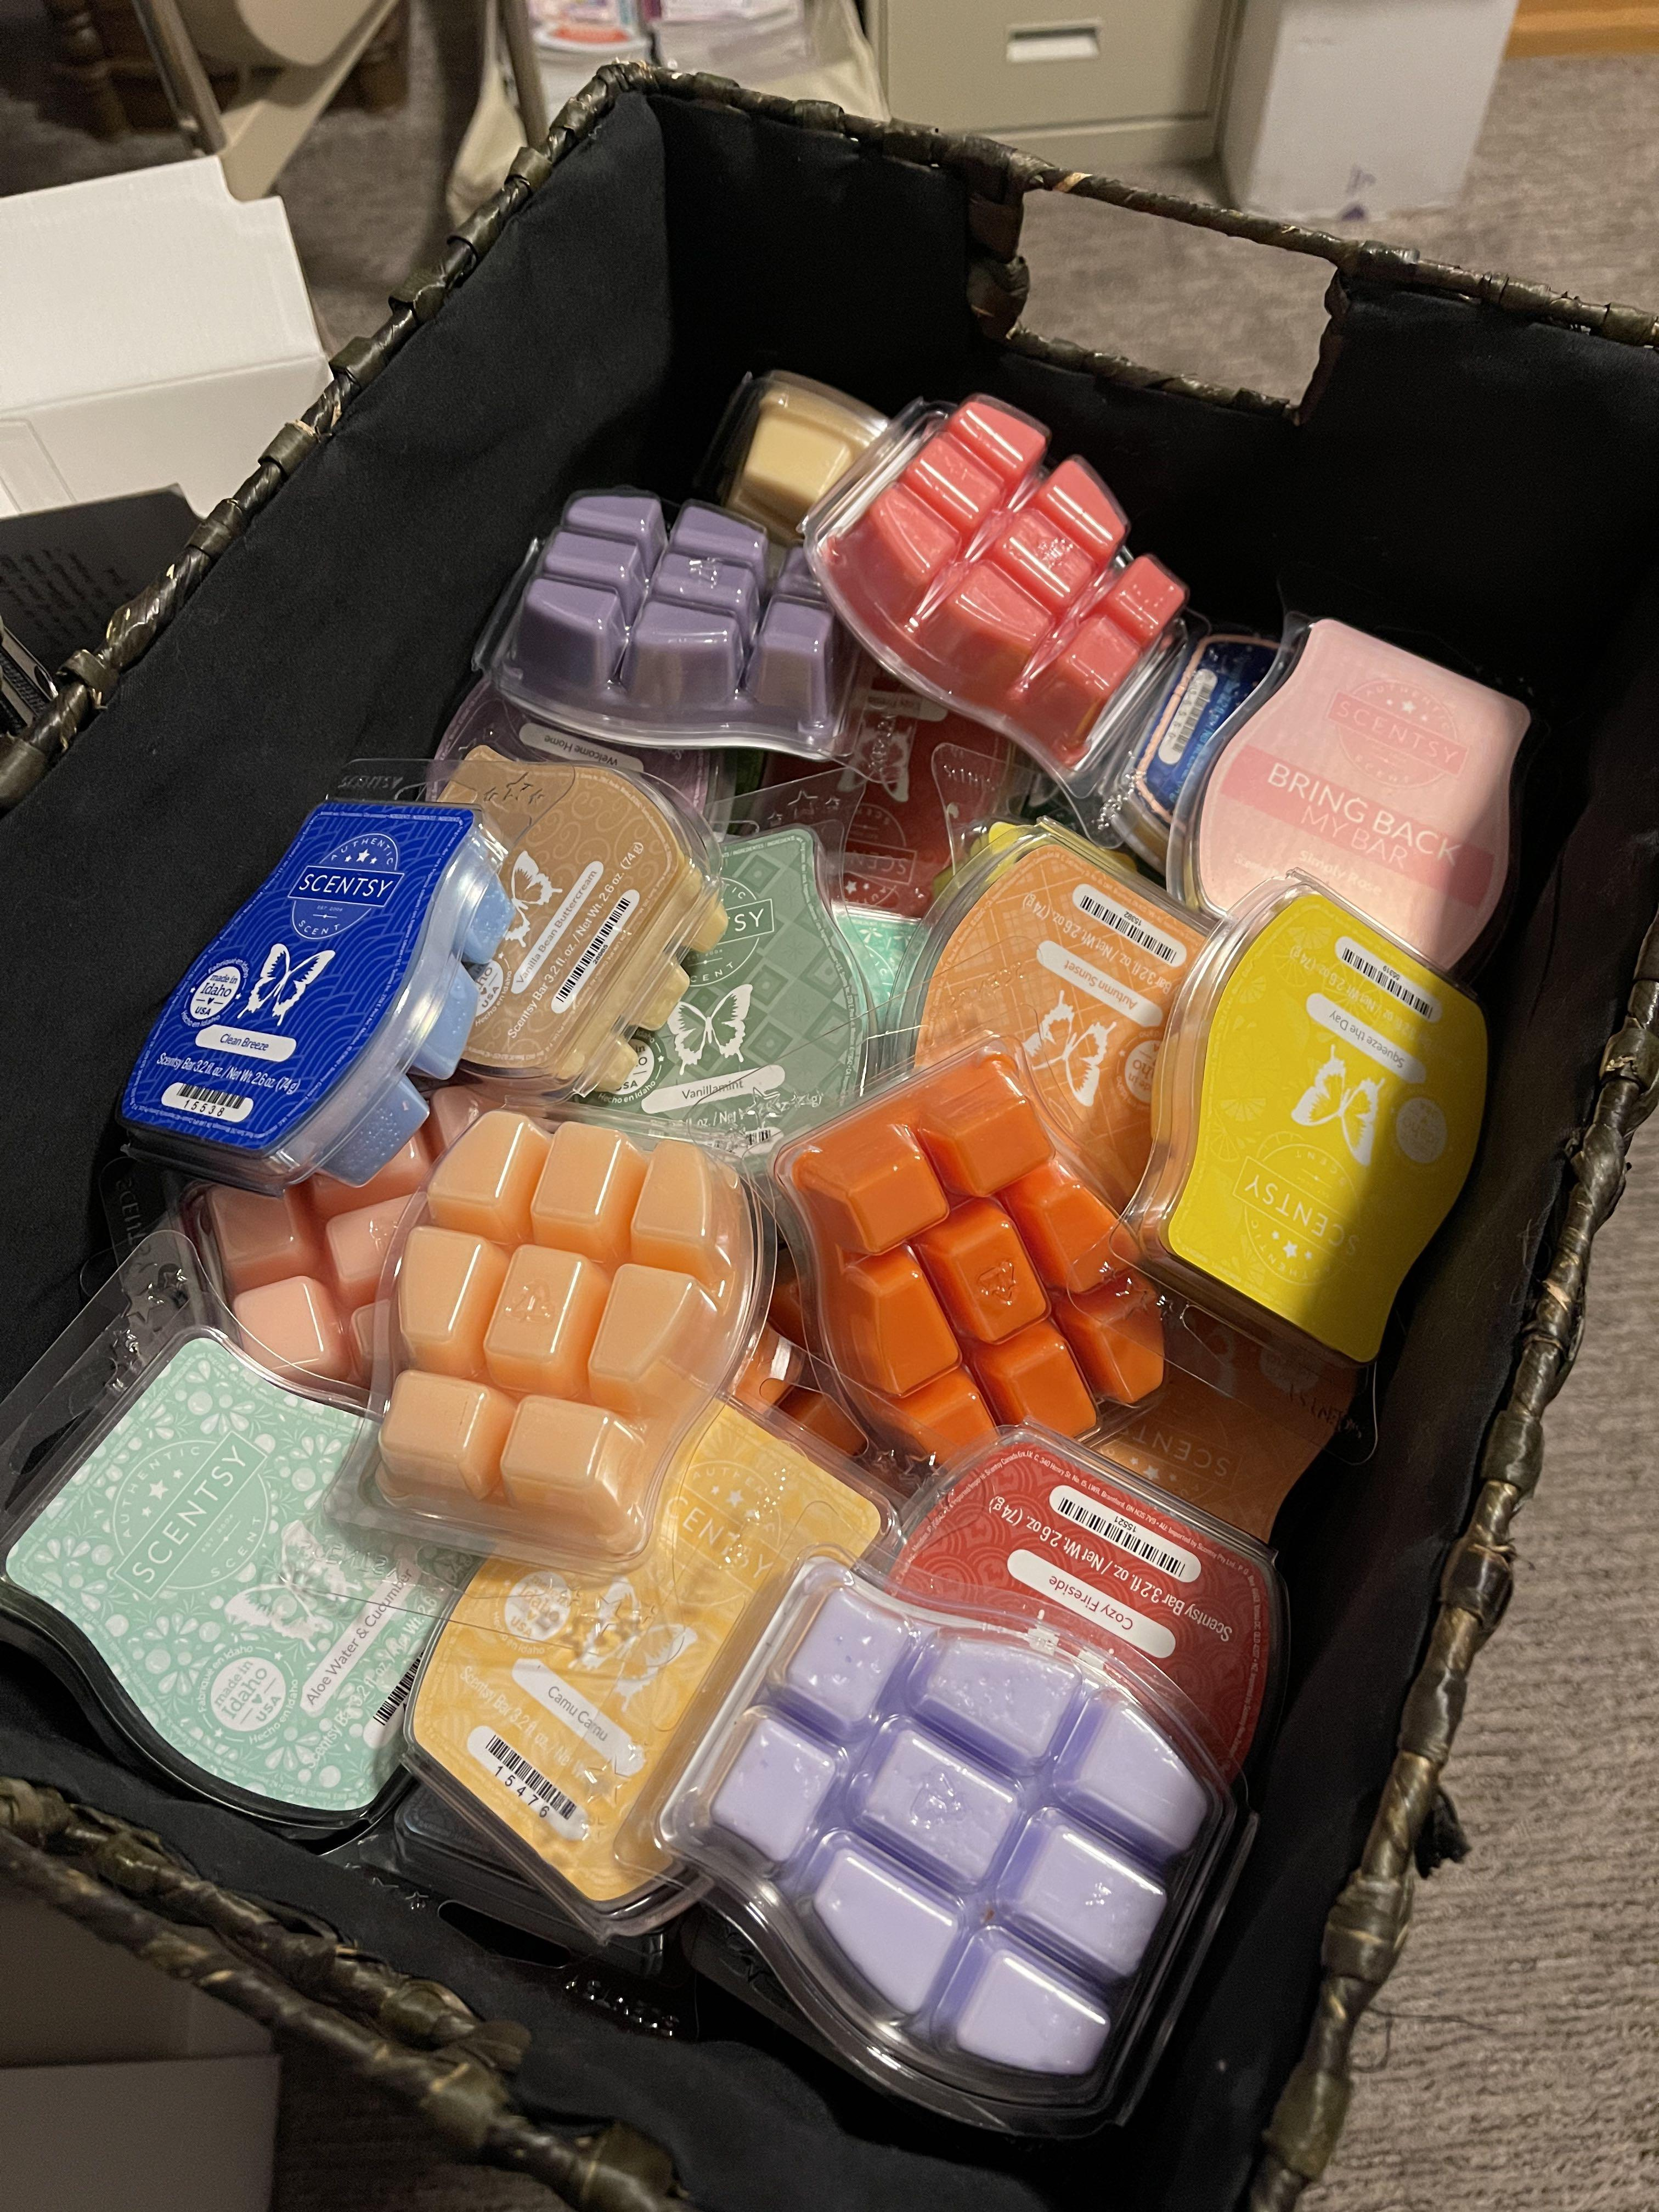 Scentsy Wax bars 10 cubes in one package